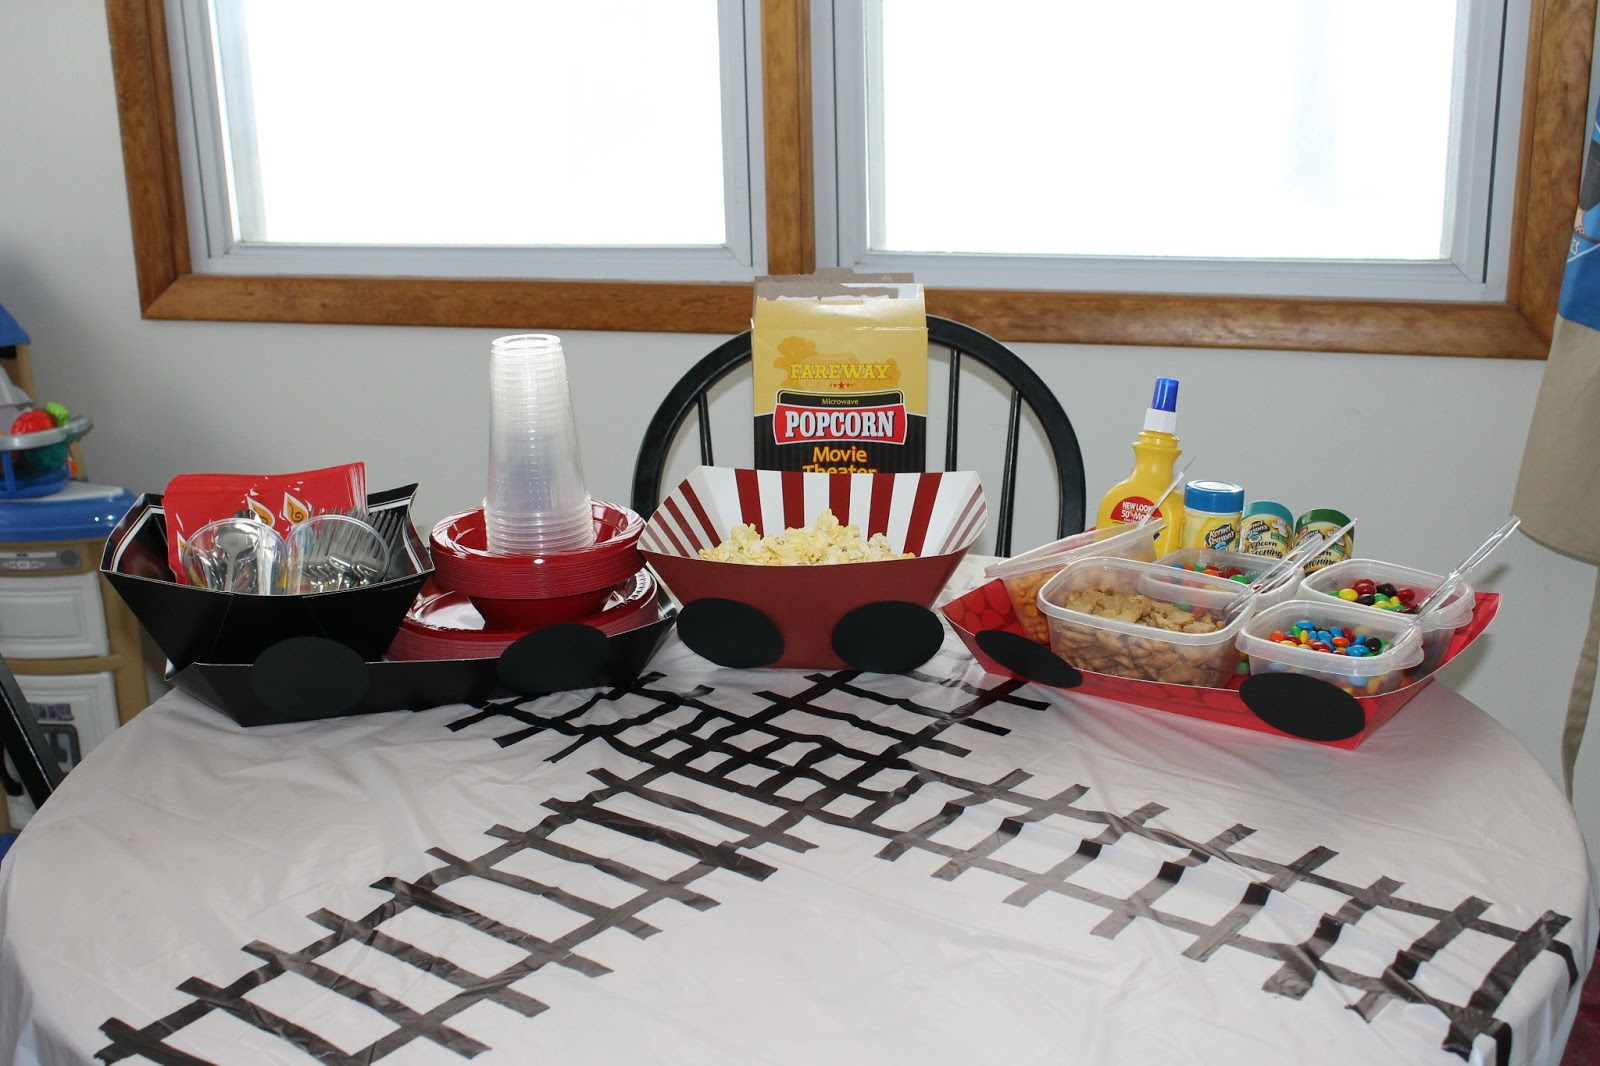 Popcorn Bar On Top Of Table Cloth I Simply Made By Using A Large Black Marker